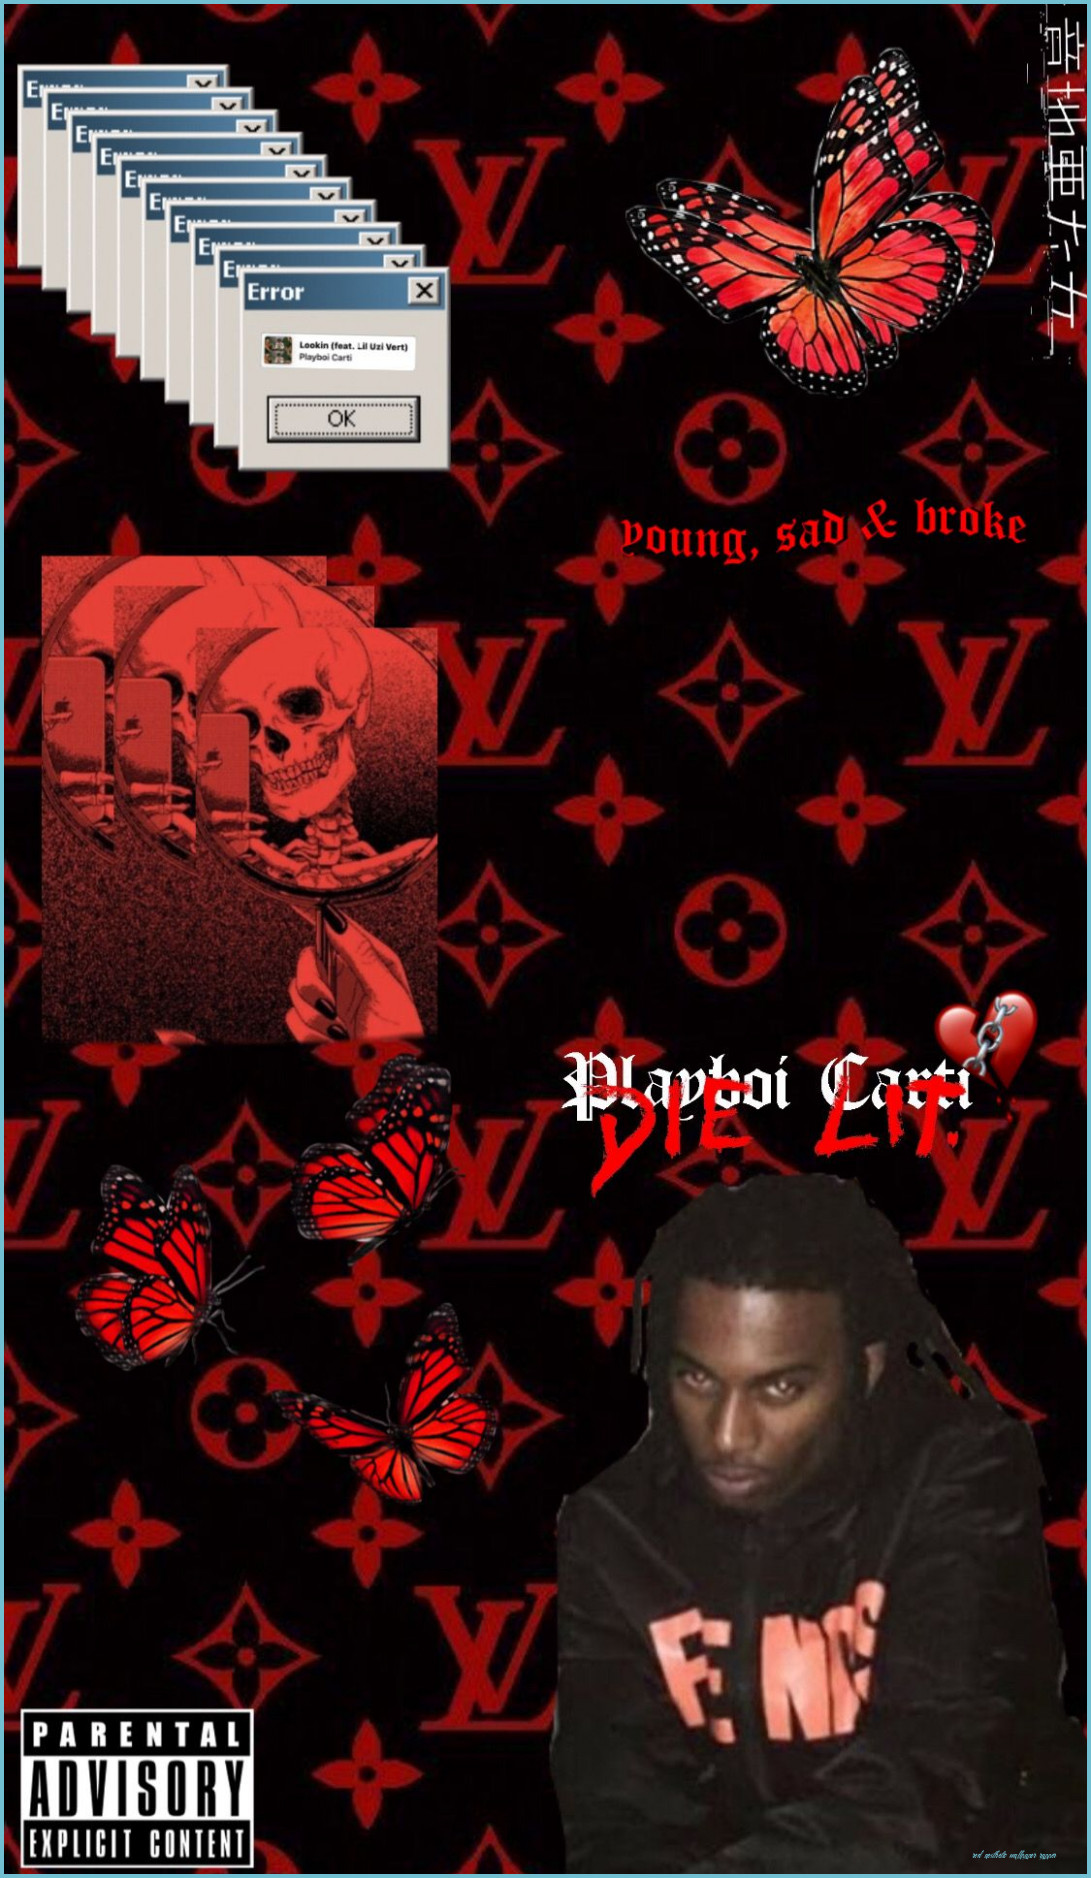 Playboi Carti x LV in 12 Rapper wallpaper iphone Red   red 1091x1878